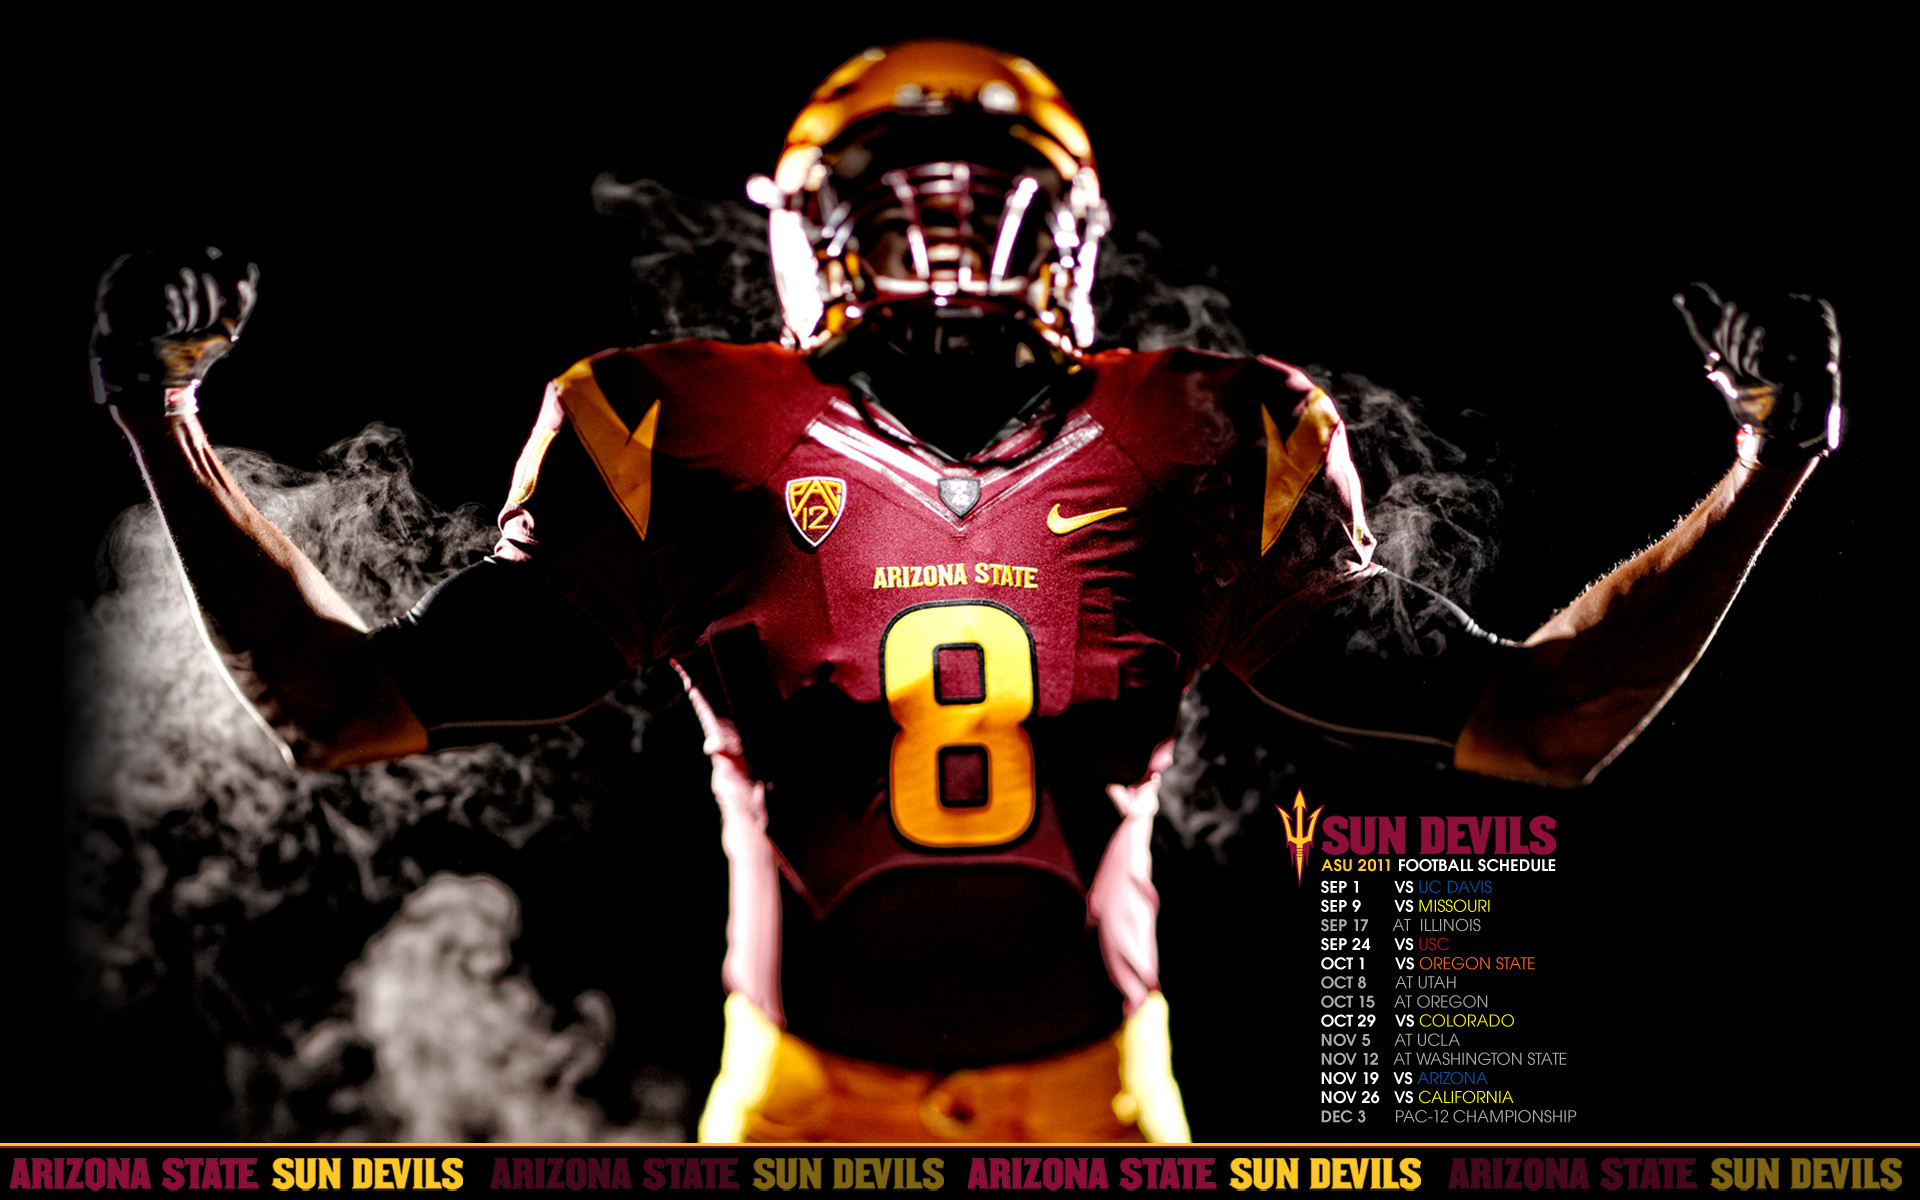 1920x1200 Iphone wallpaper ASU Arizona State University Sun Devils 1365×1024 Arizona state university wallpaper (